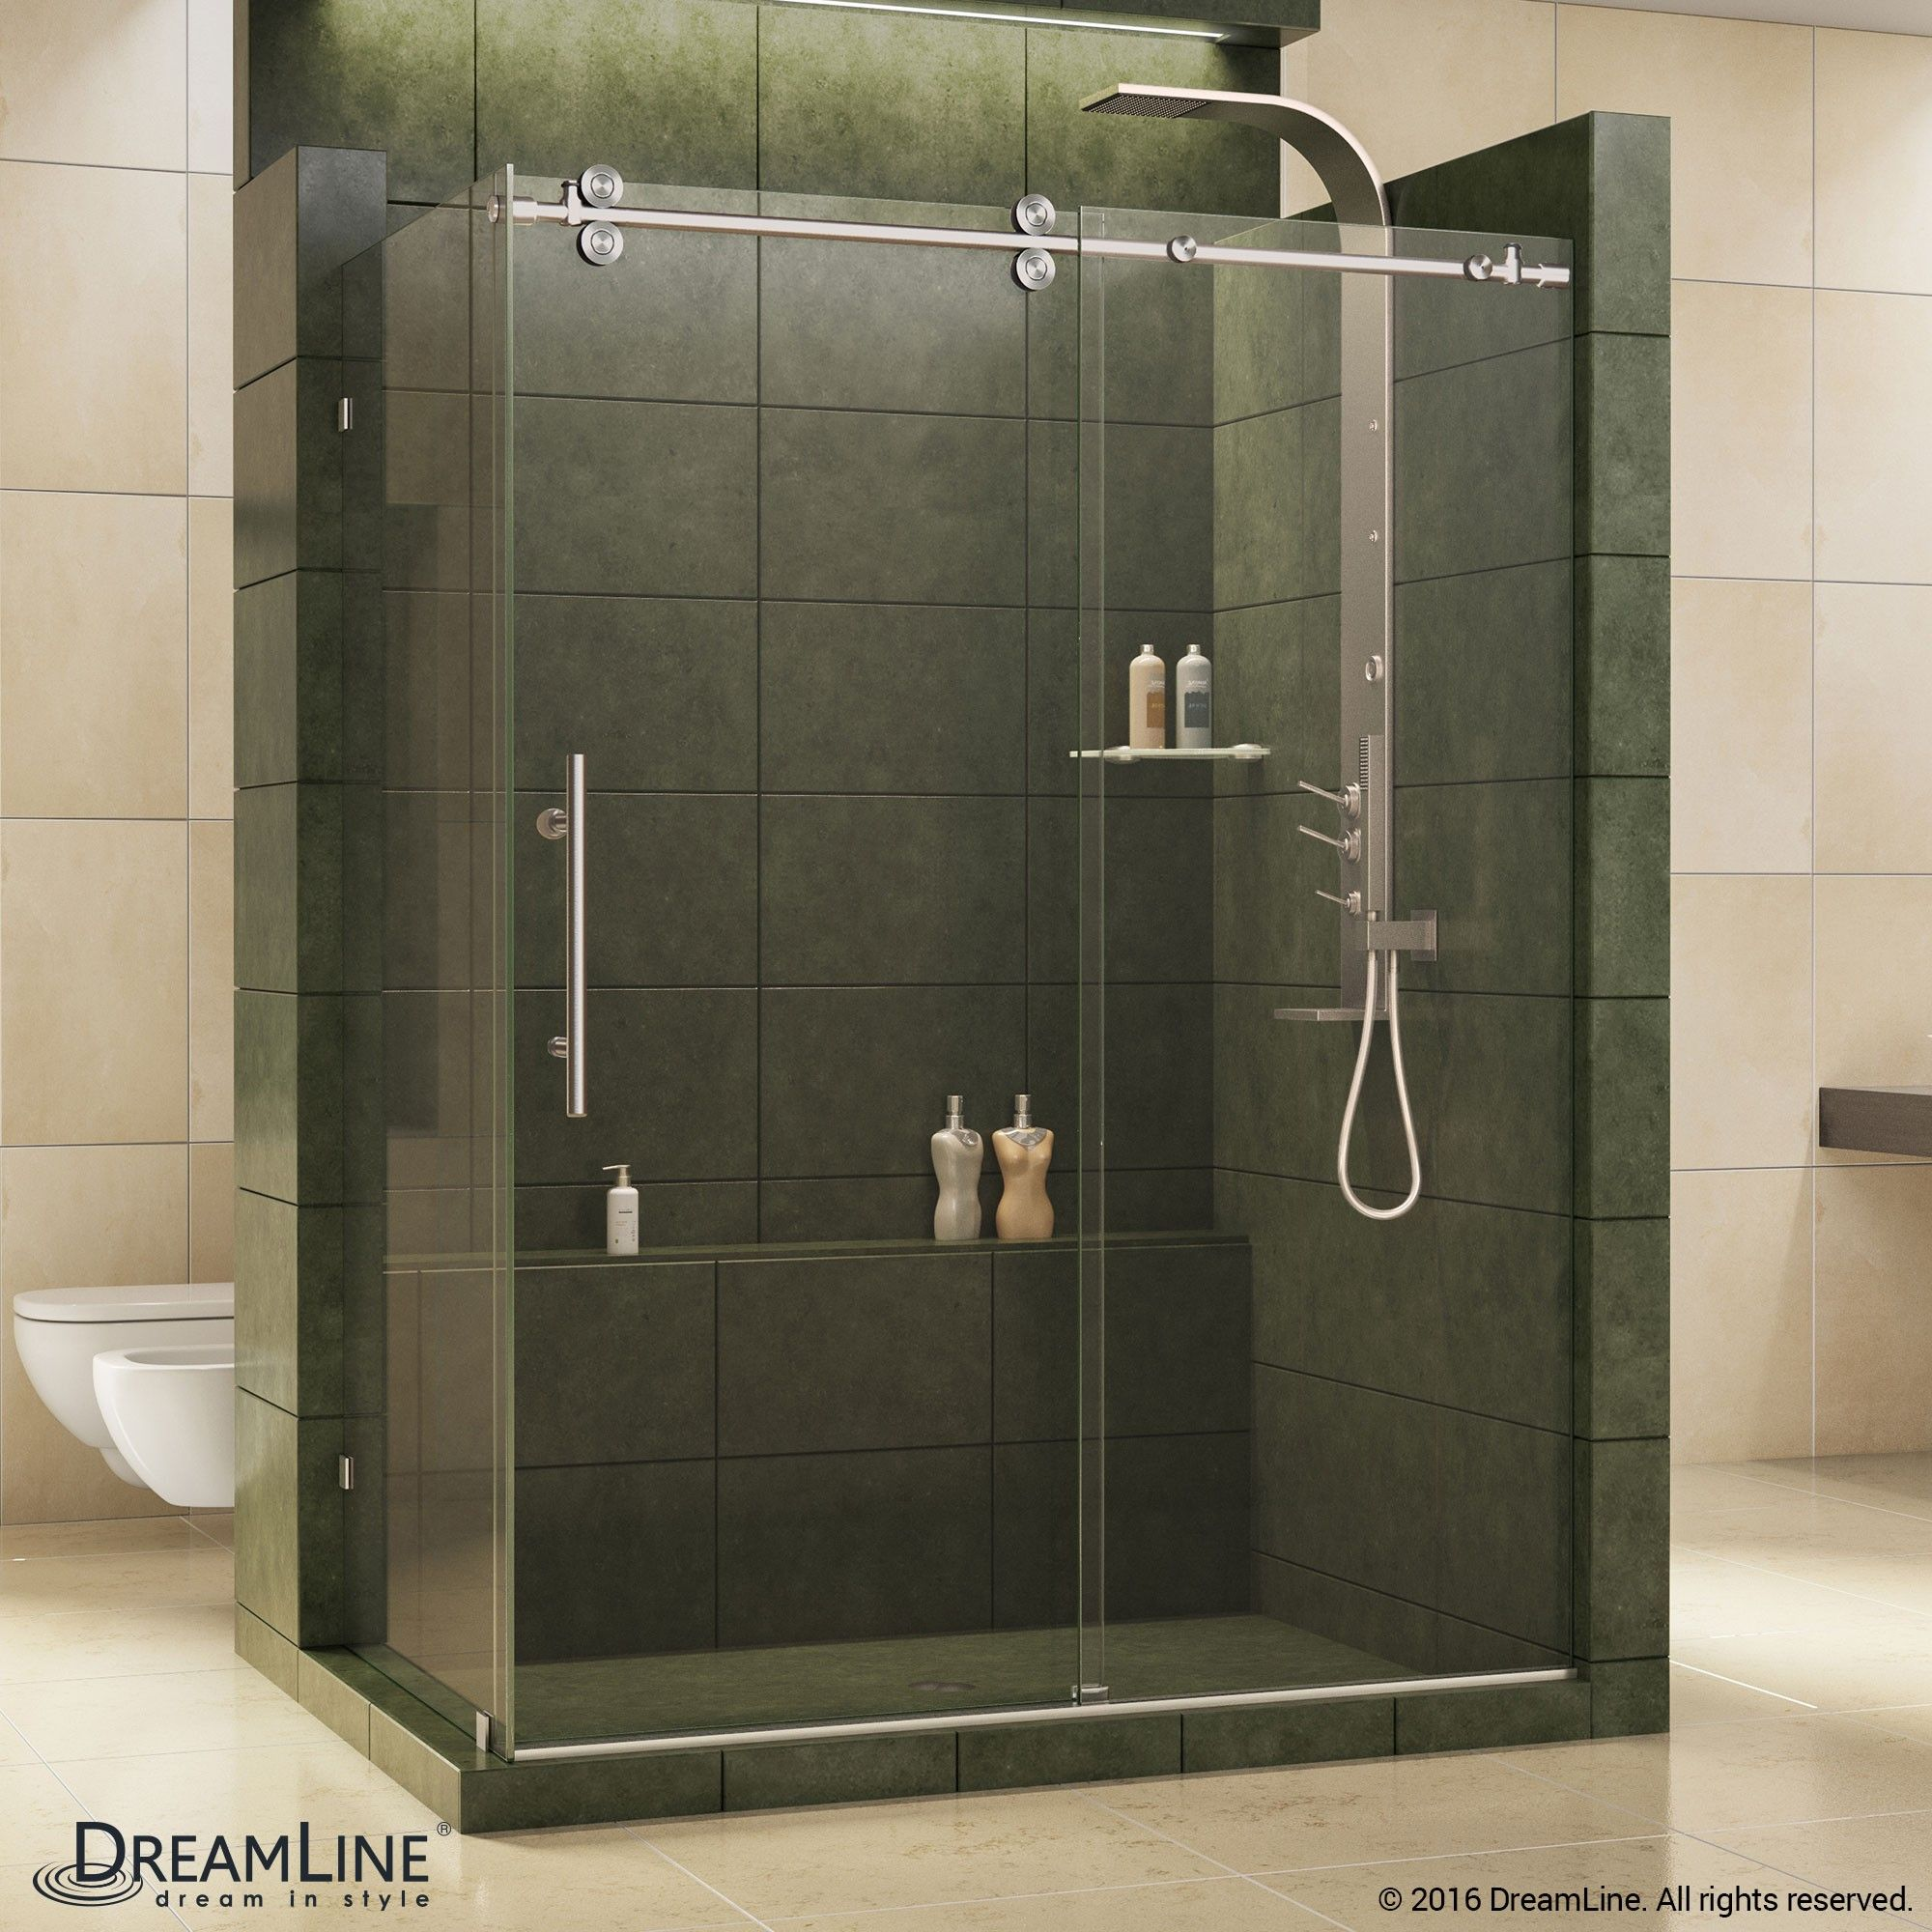 The Dreamline Enigma Is A Fully Frameless Sliding Shower Enclosure Is Stunning With 1 2 In Thick Tempered Sliding Shower Door Steel Shower Door Shower Doors